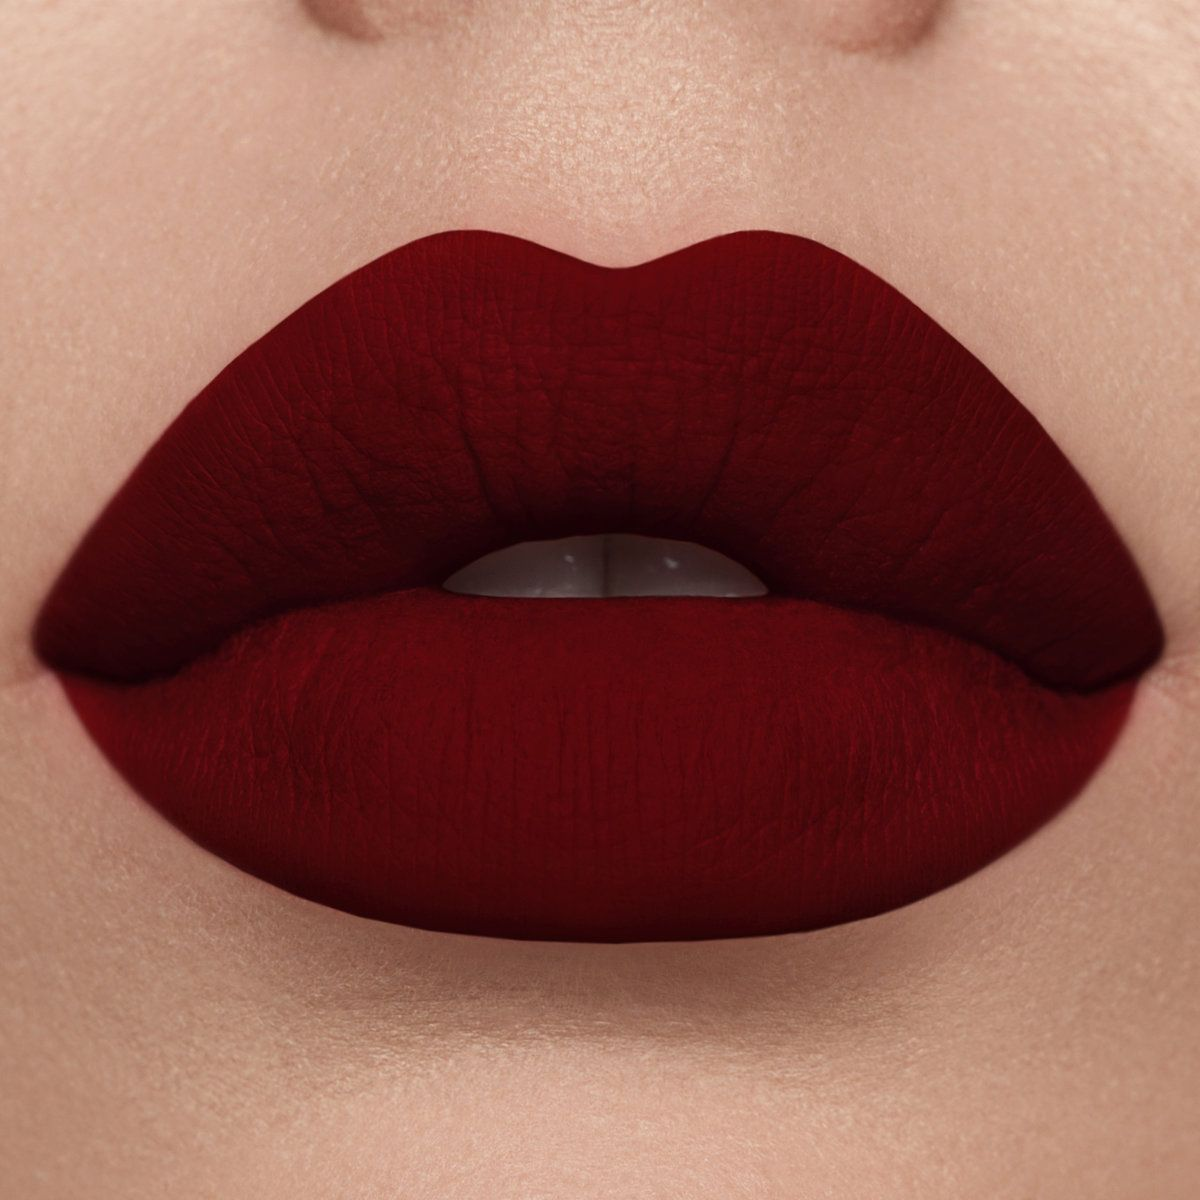 Ombre Dark Glossy Lips Pinterest Icycouture00 Lip Art